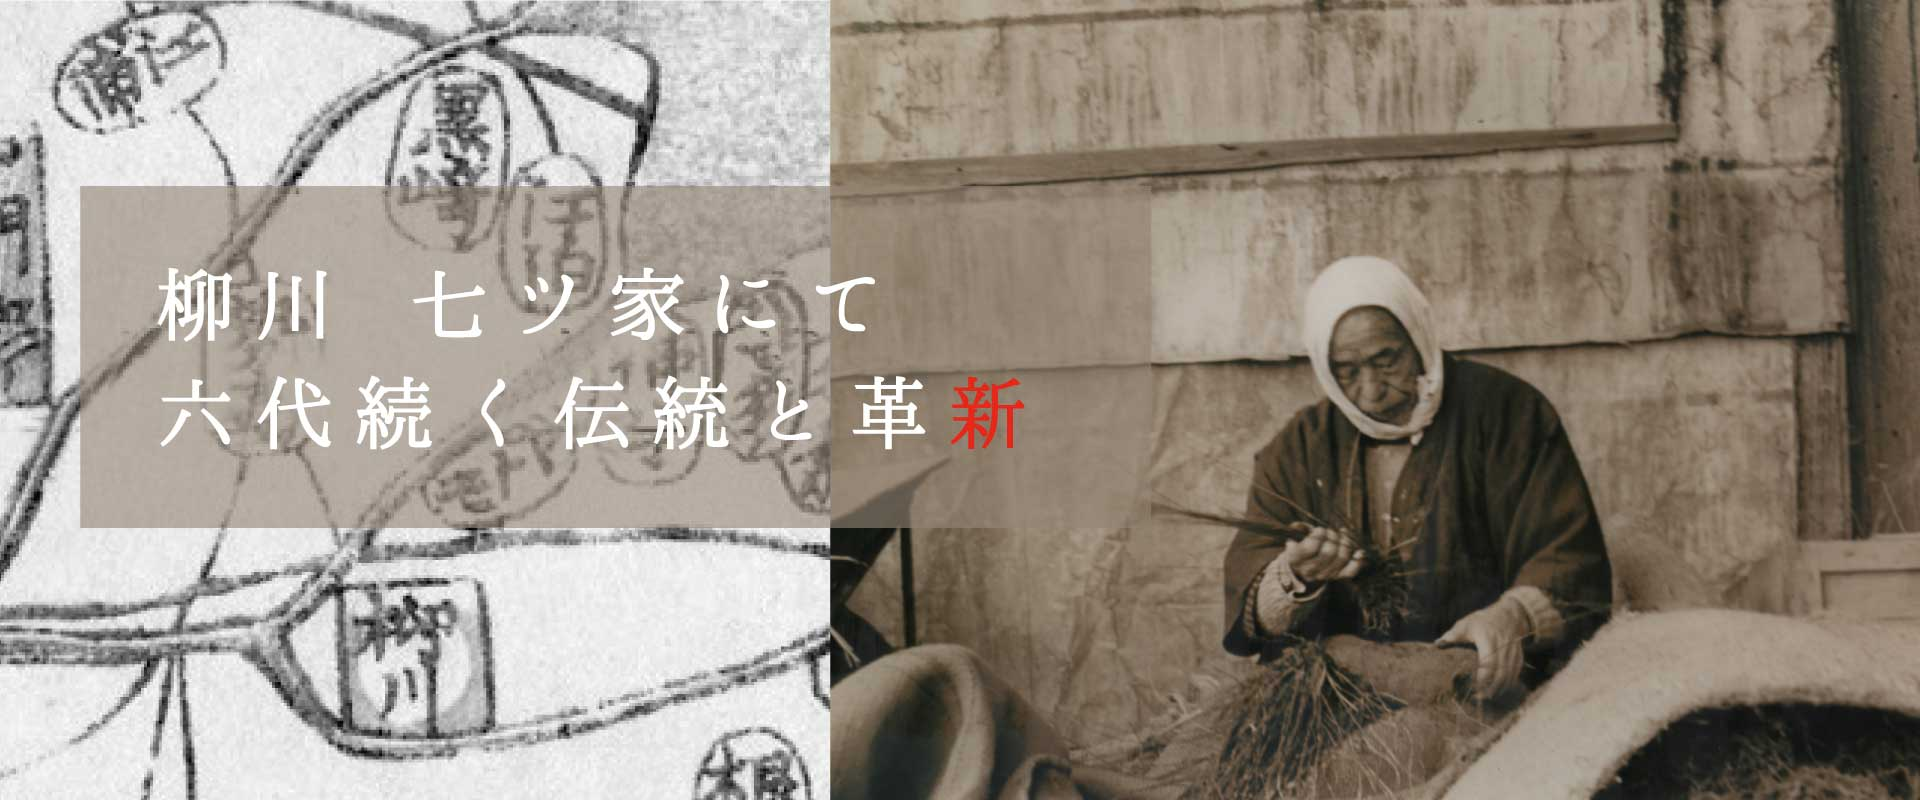 Six generations of tradition and innovation in Nanatsue, Yanagawa-shi.